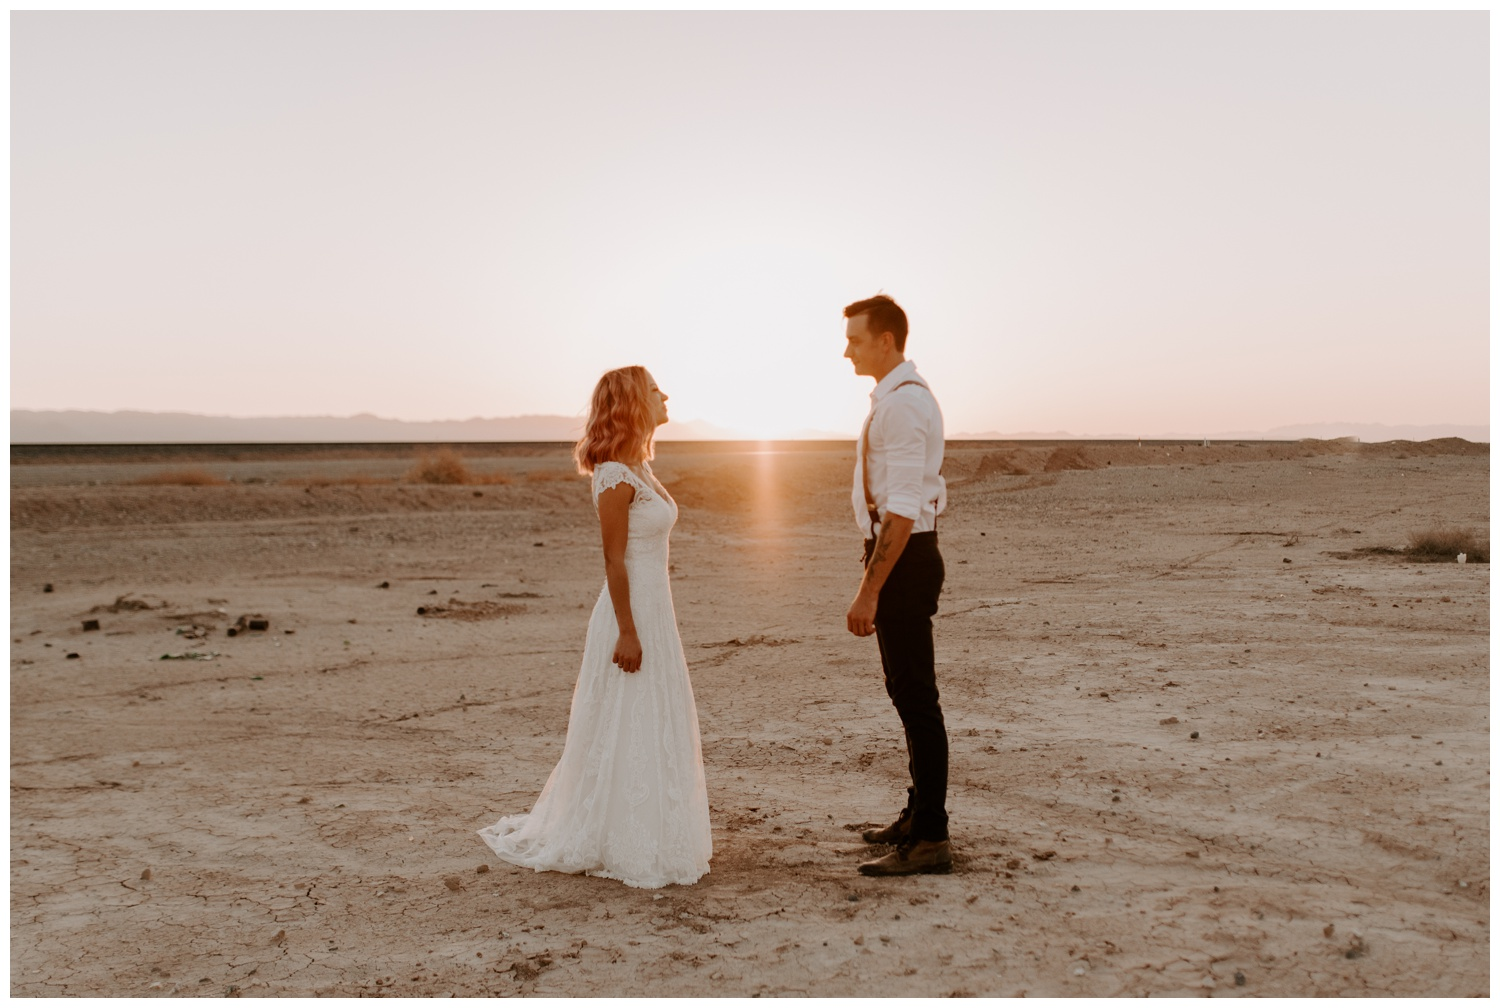 Kira and Brayden Elopement Highlights - Jessica Heron Images 090.jpg